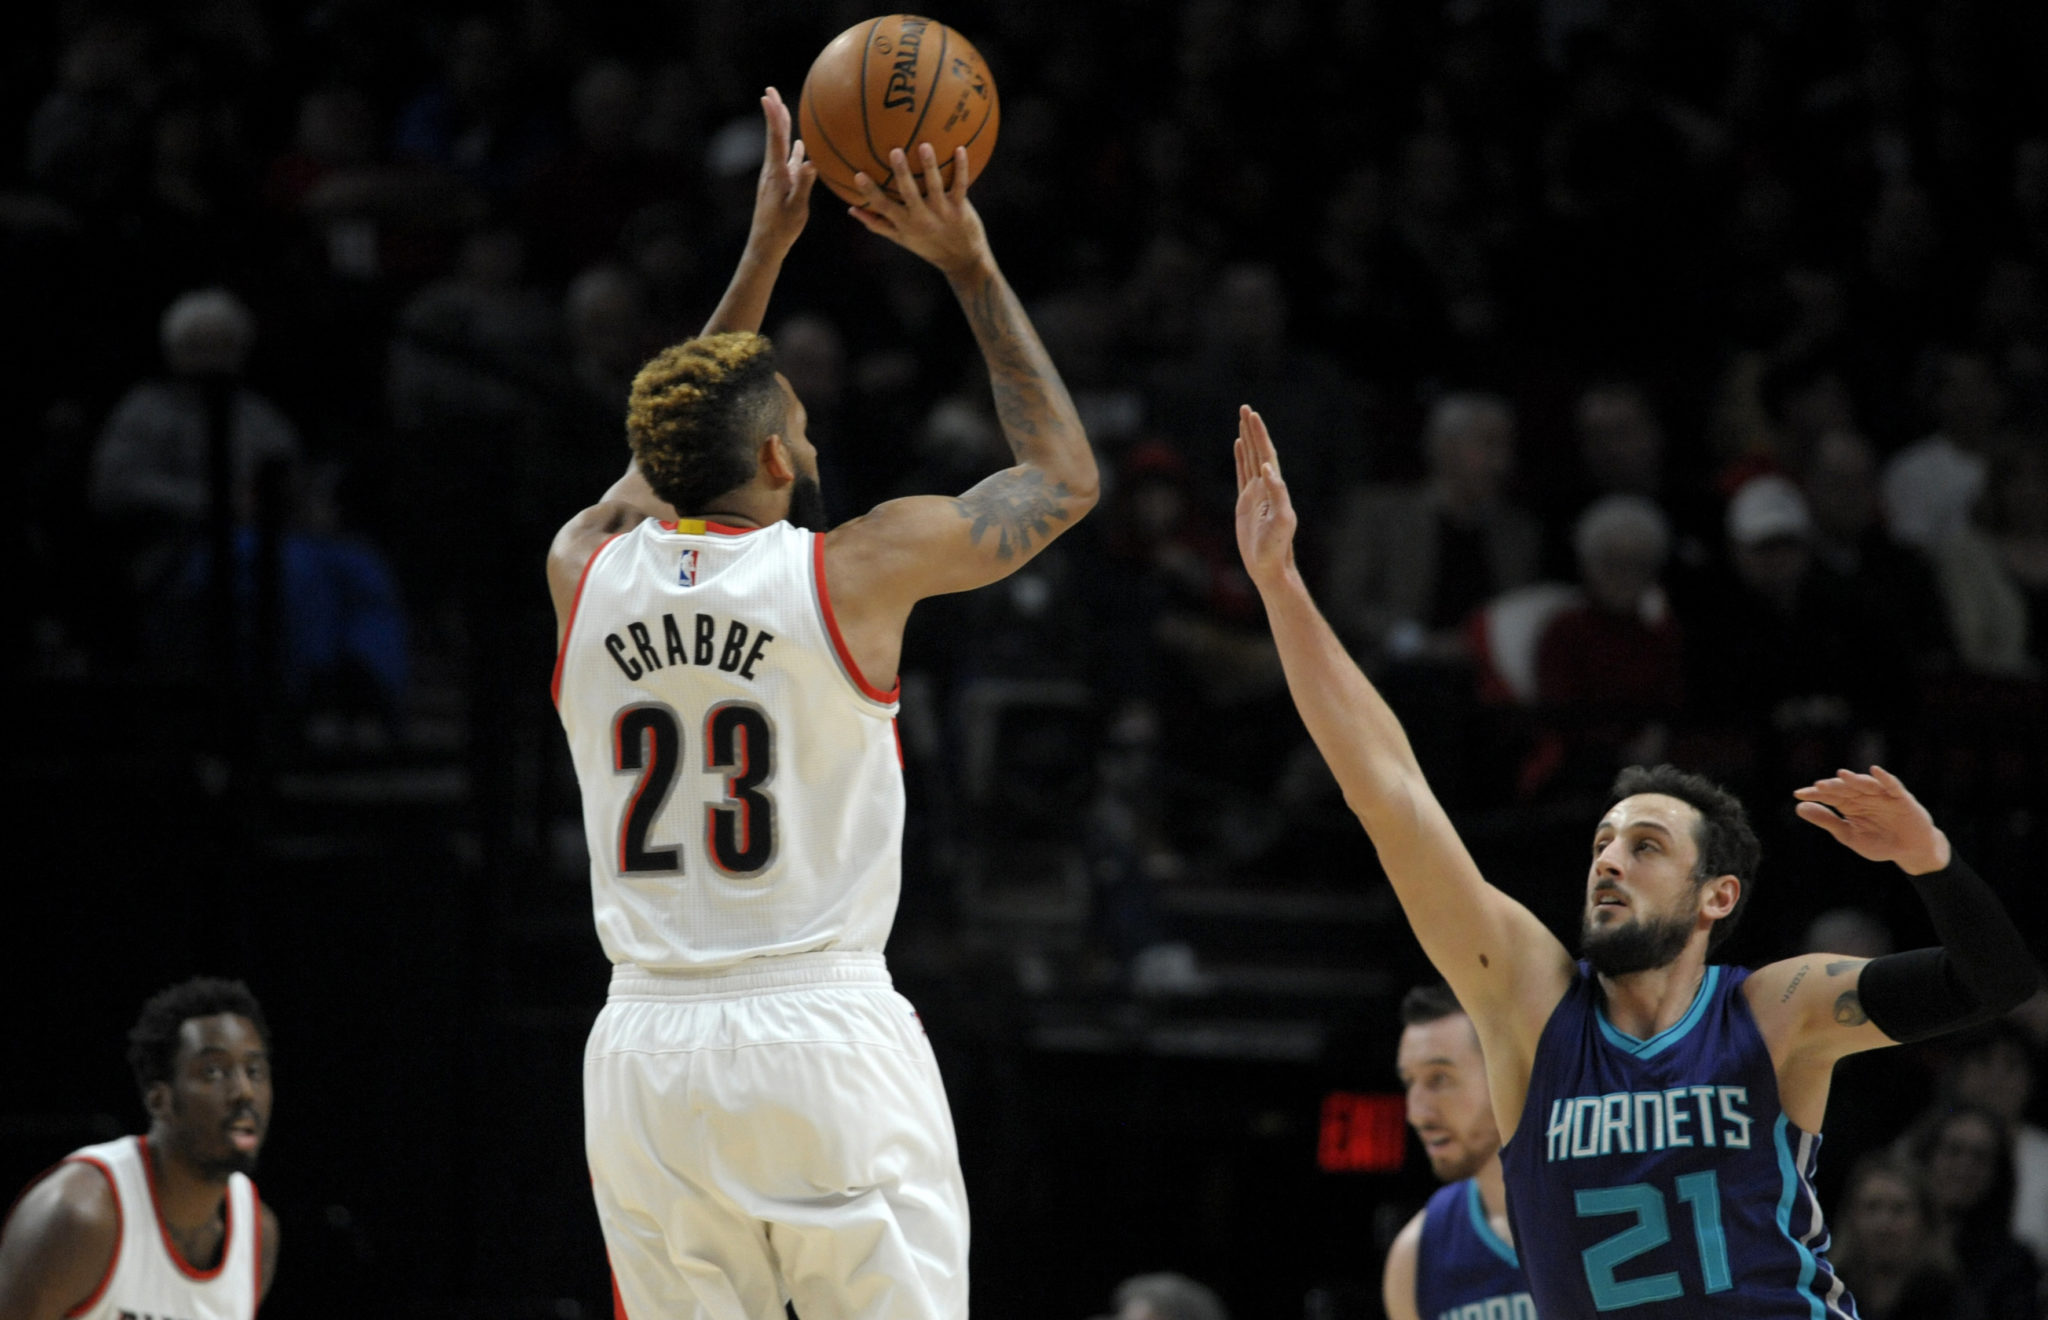 Jan 31 2017 Portland OR USA Portland Trail Blazers guard Allen Crabbe shoots the ball over Charlotte Hornets guard Marco Belinelli during the first quarter at the Moda Center. Mandatory Credit Steve Dykes-USA TODAY Sports